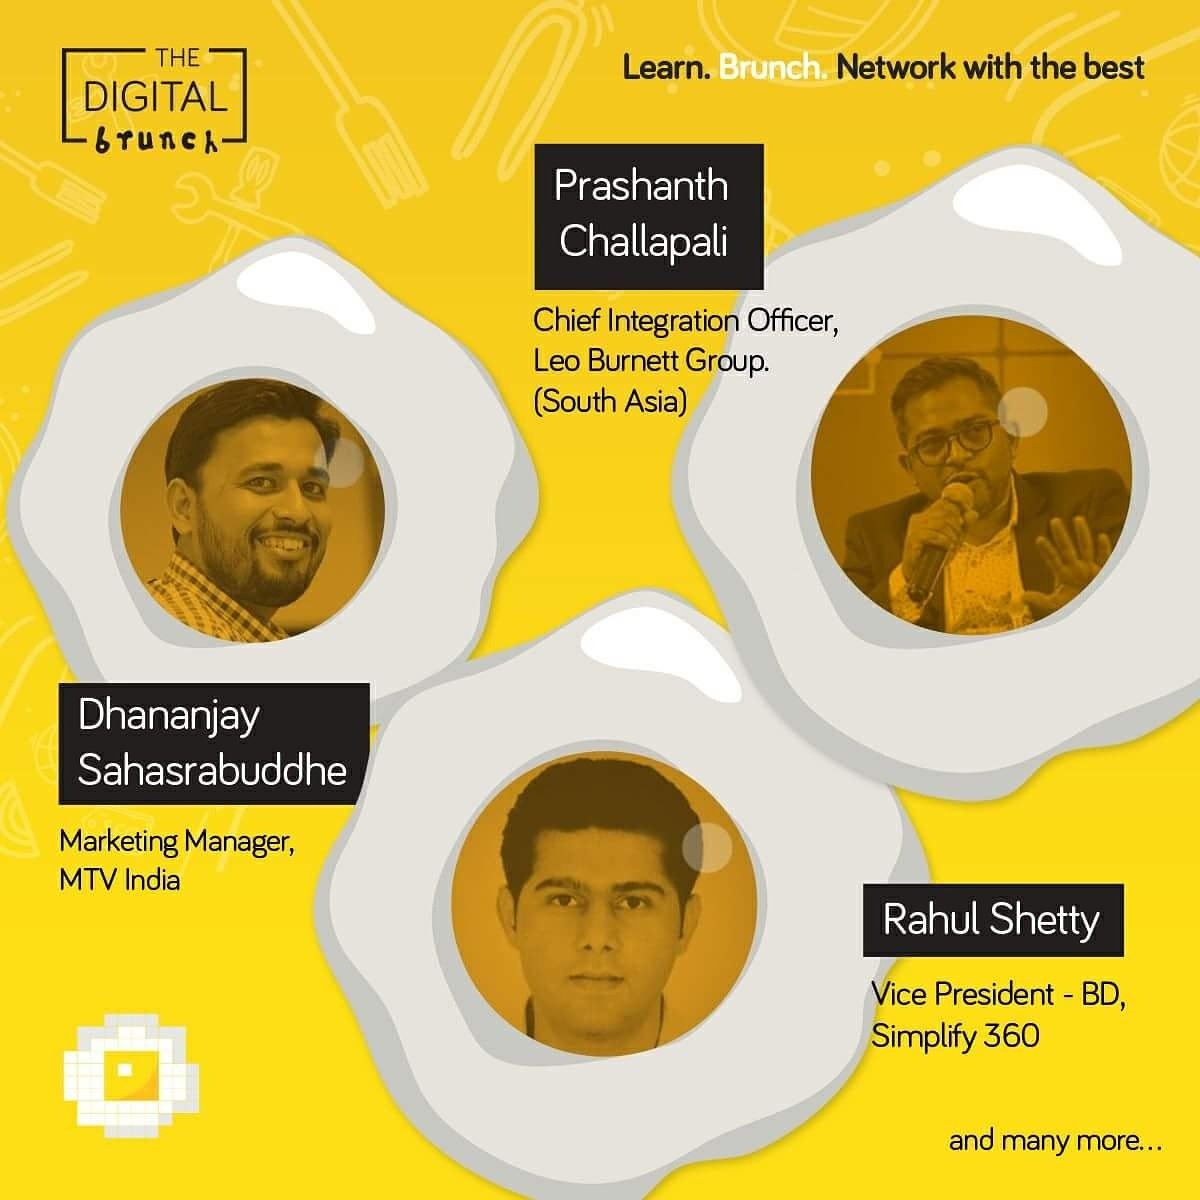 Learn, Brunch and Network with the best in industry. Apply today:  http://www. thedigitalbrunch.com  &nbsp;  . #TheDigitalBrunch #DigitalMarketing #Course <br>http://pic.twitter.com/ywlD9Ae17V